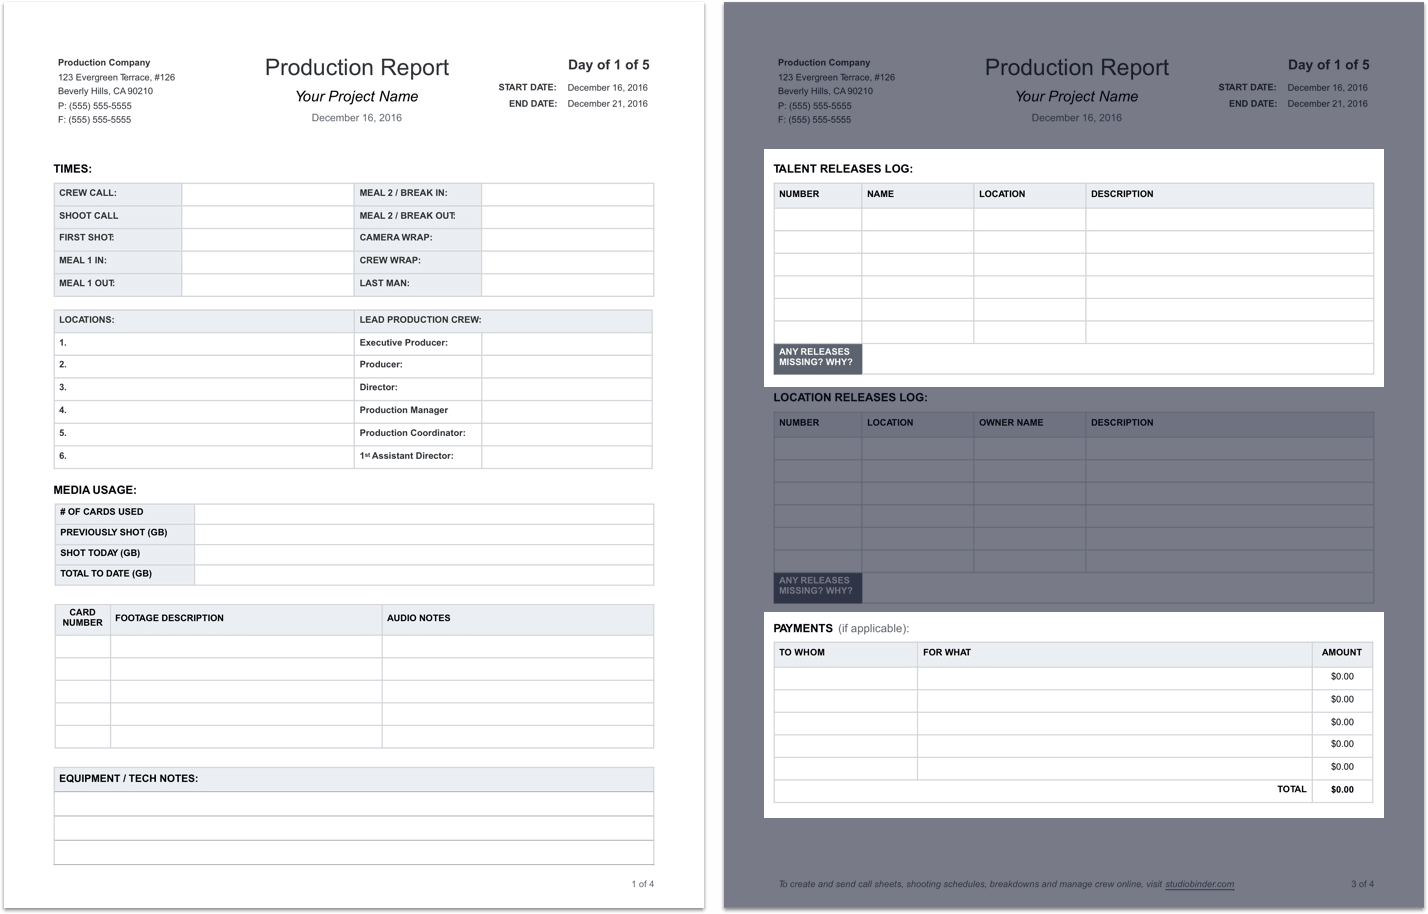 Daily Production Report Template   Tear Sheet   StudioBinder  Daily Report Templates